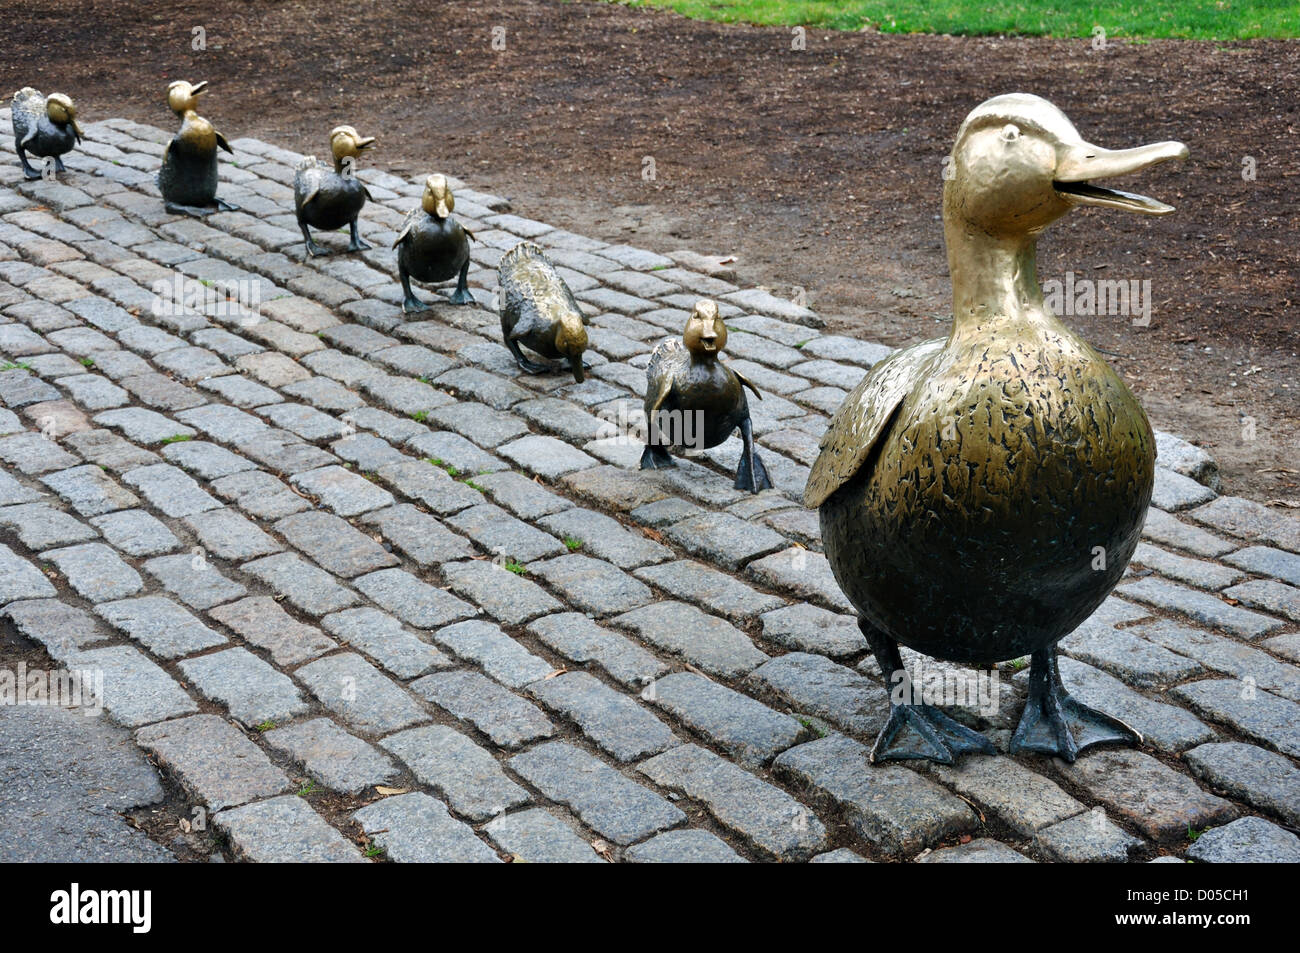 Make Way For Ducklings Bronze Sculpture In Boston Public Garden